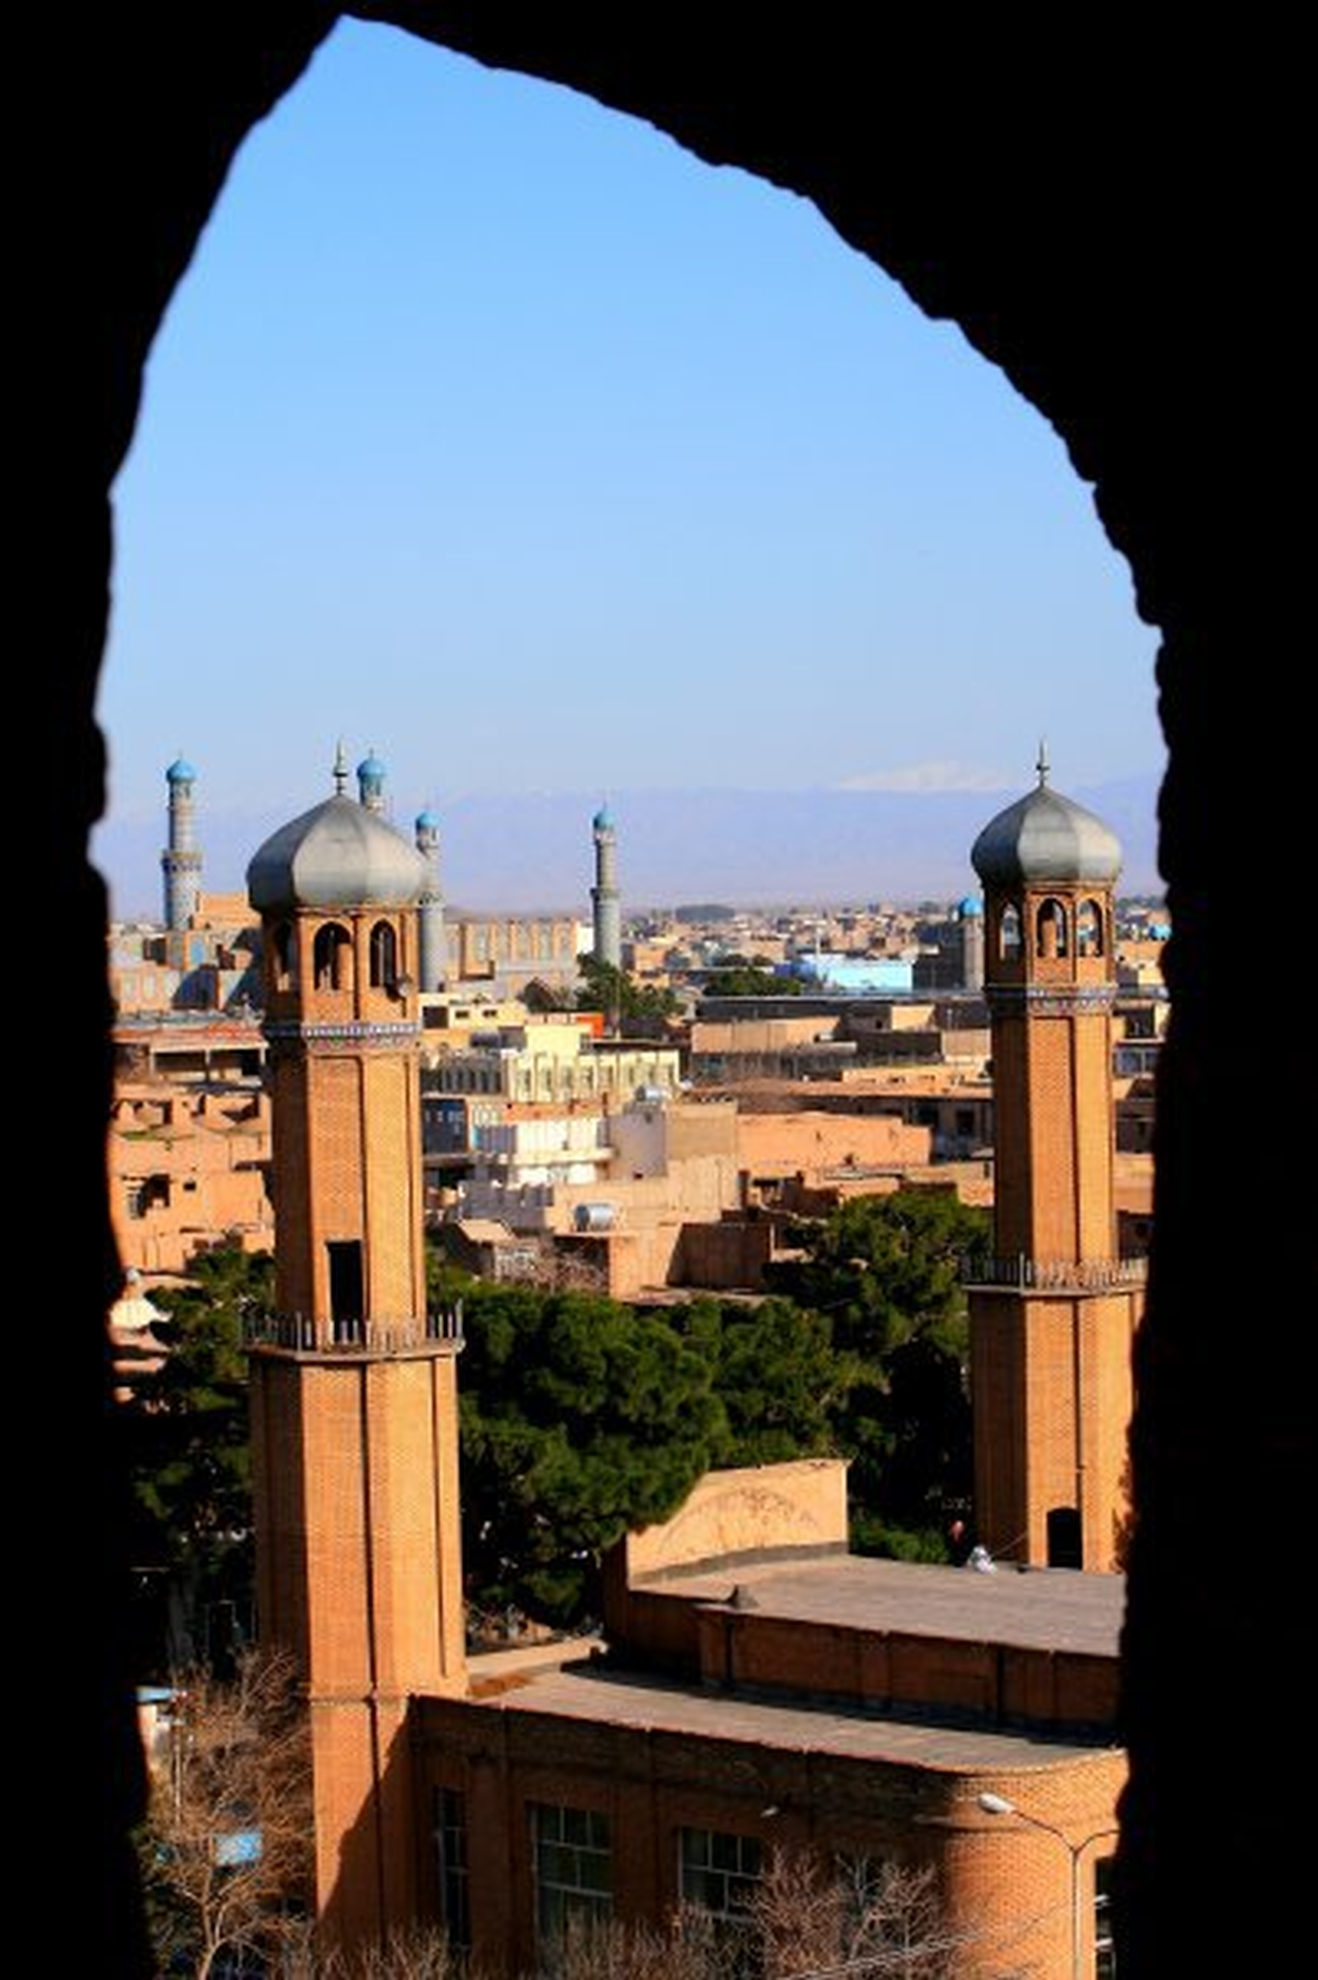 Mosques seen from the citadel in Herat. Photo: Tahir Bakhtiary